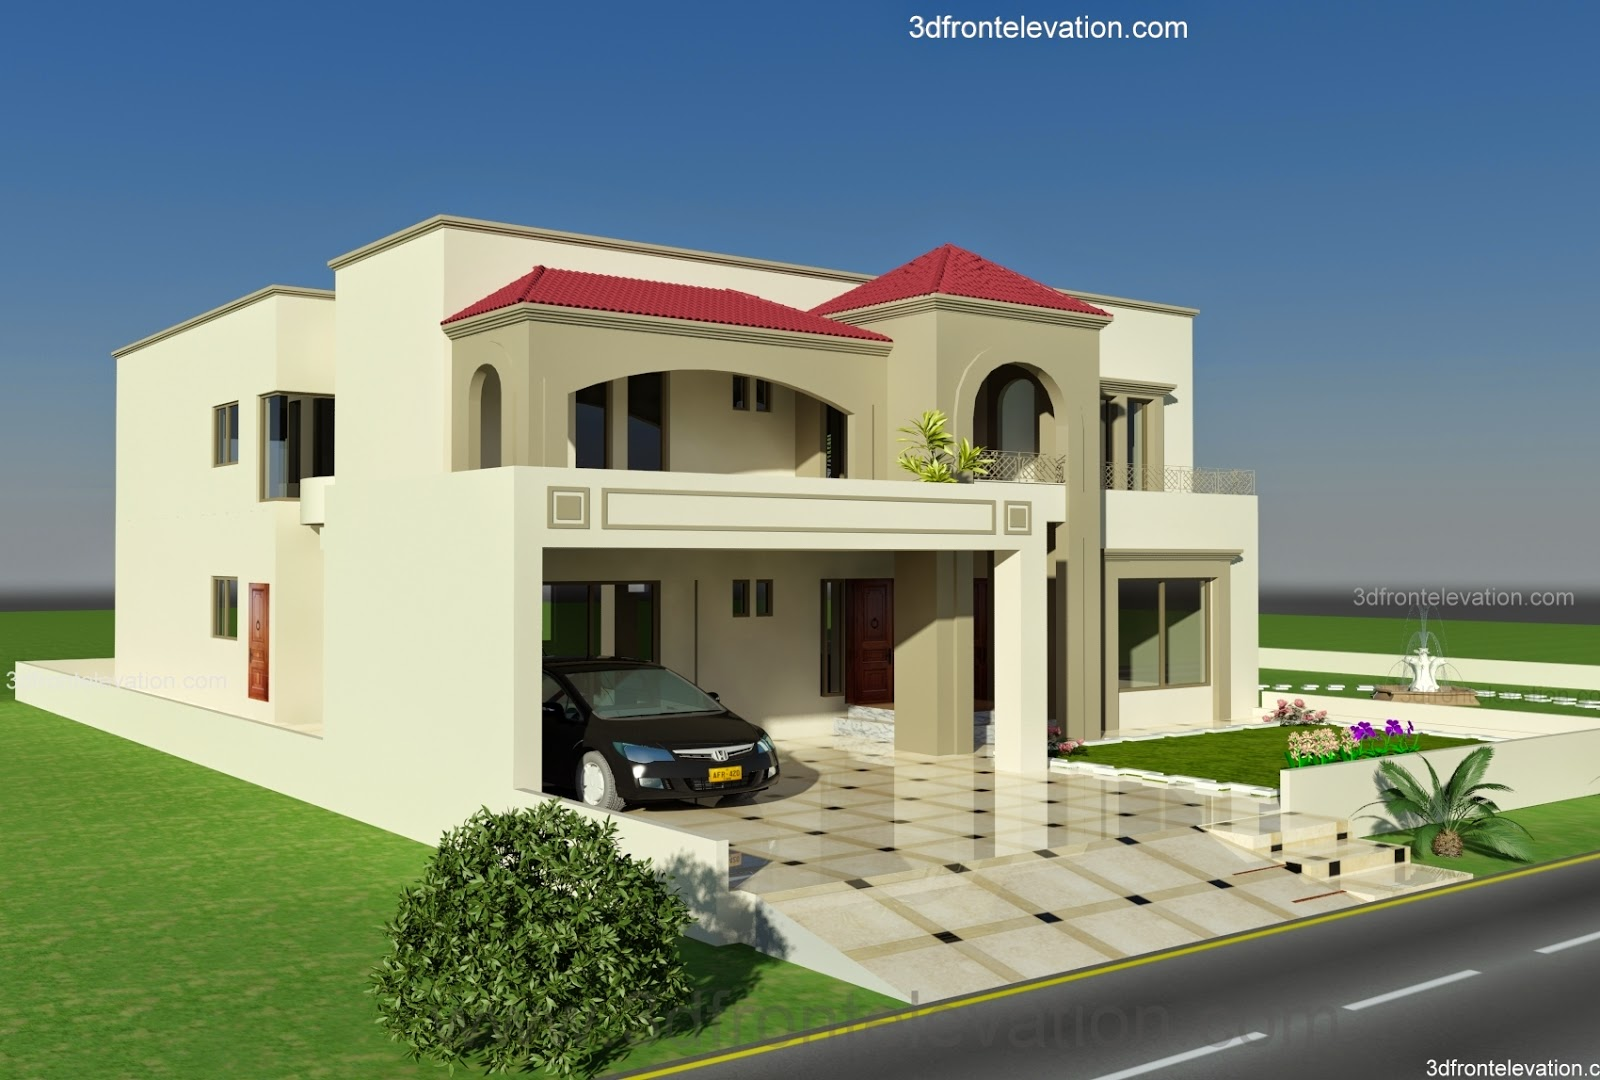 House Plans And Design Architectural Design Of 1 Kanal House